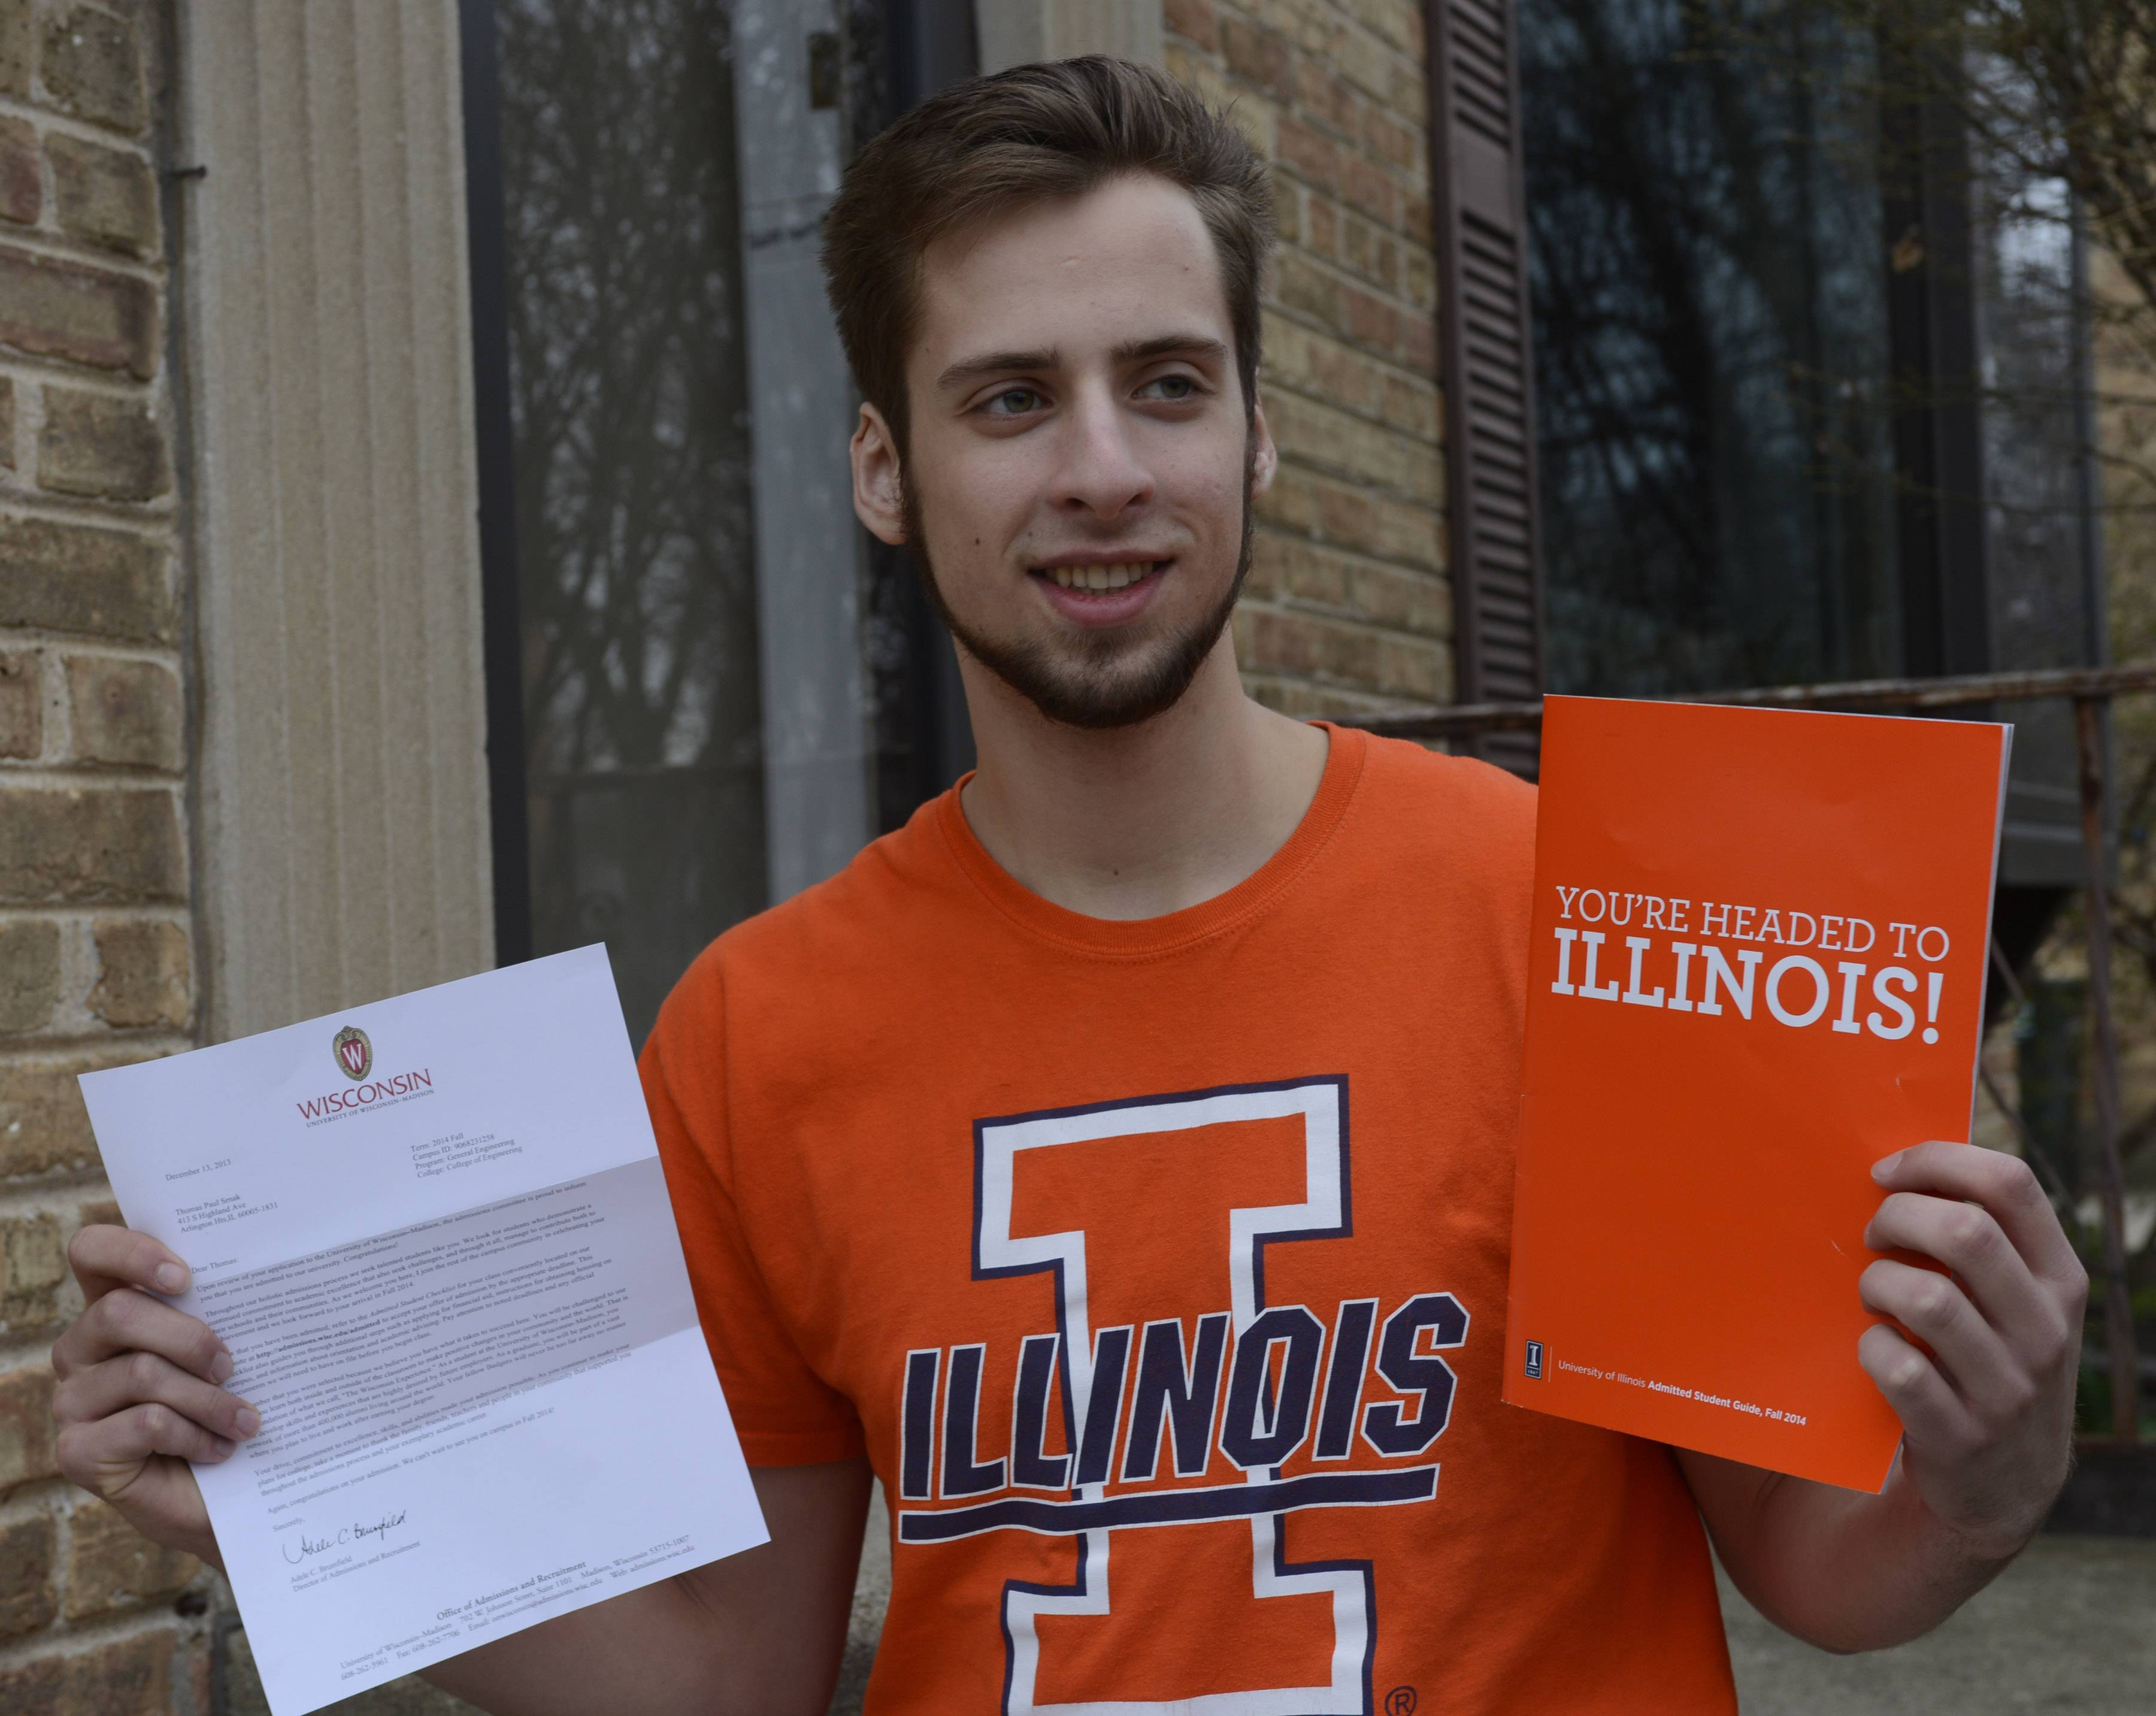 The University of Illinois' better financial aid offer led Tom Srnak of Arlington Heights to choose it over the University of Wisconsin-Madison, the college he'd always expected to attend.